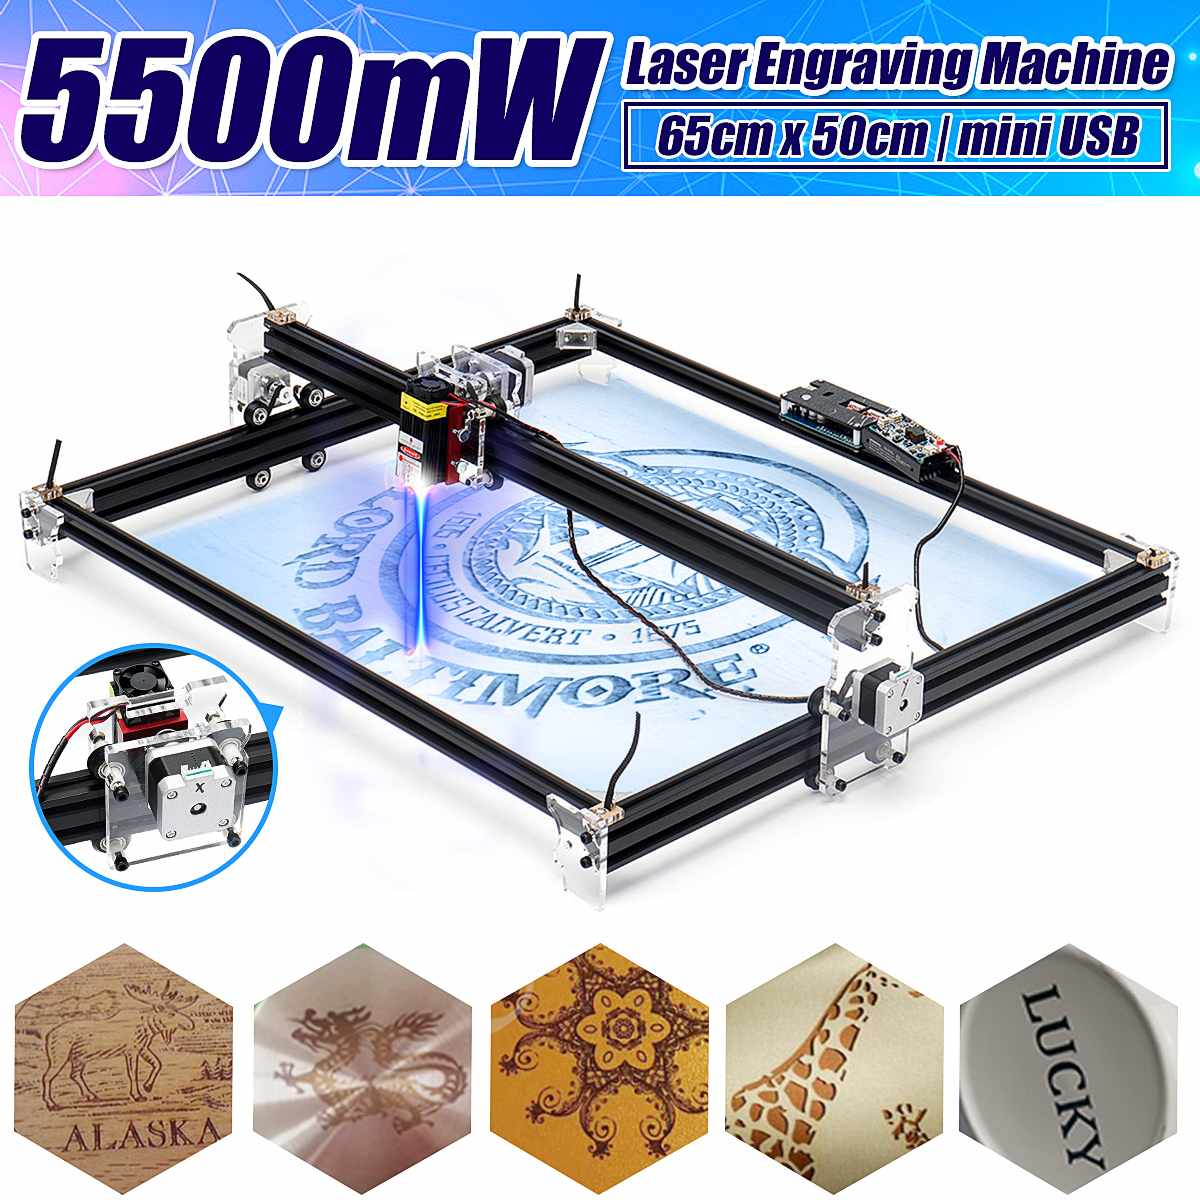 12V Mini 5500mW 65*55cm Blue CNC Laser Engraving Machine 2Axis DIY Home Engraver Desktop Wood Router/Cutter/Printer Machine Tool(China)